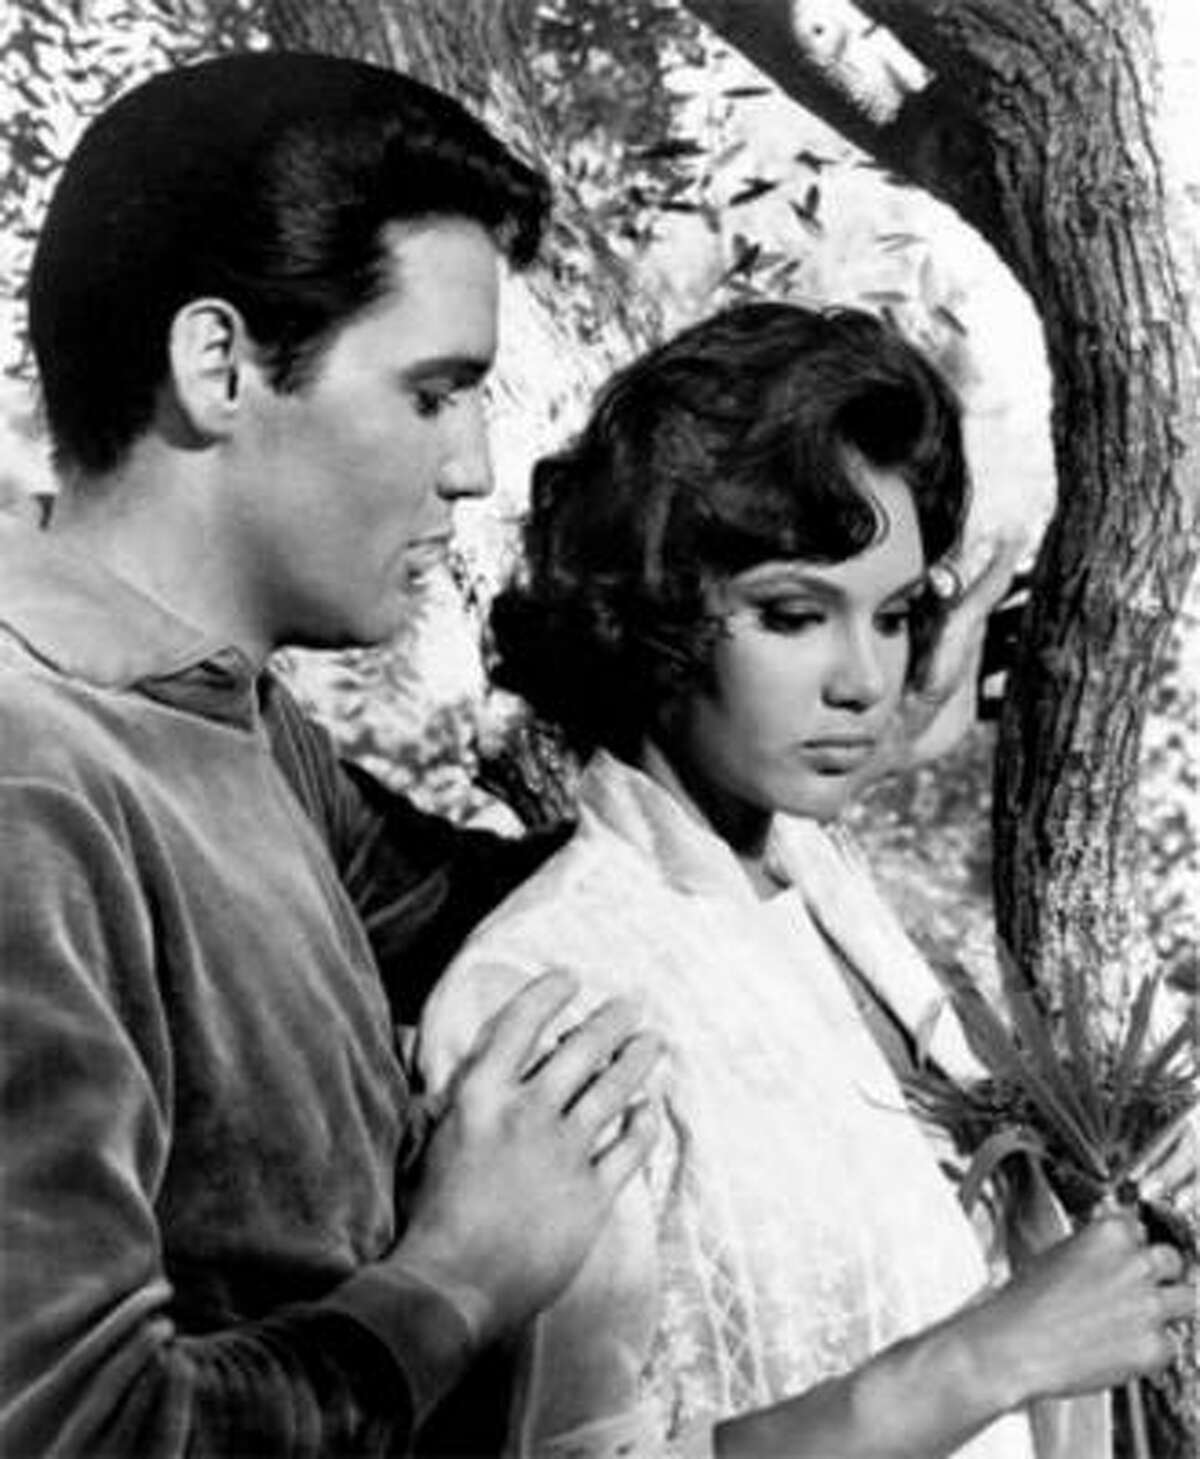 Girl Happy (1965): Too good to be true? A Chicago mobster hires Elvis and his band to watch over his daughter on her spring break getaway. Eventually, some creep guy goes after the girl when the heartthrob, hip shaker intervenes and saves the day.